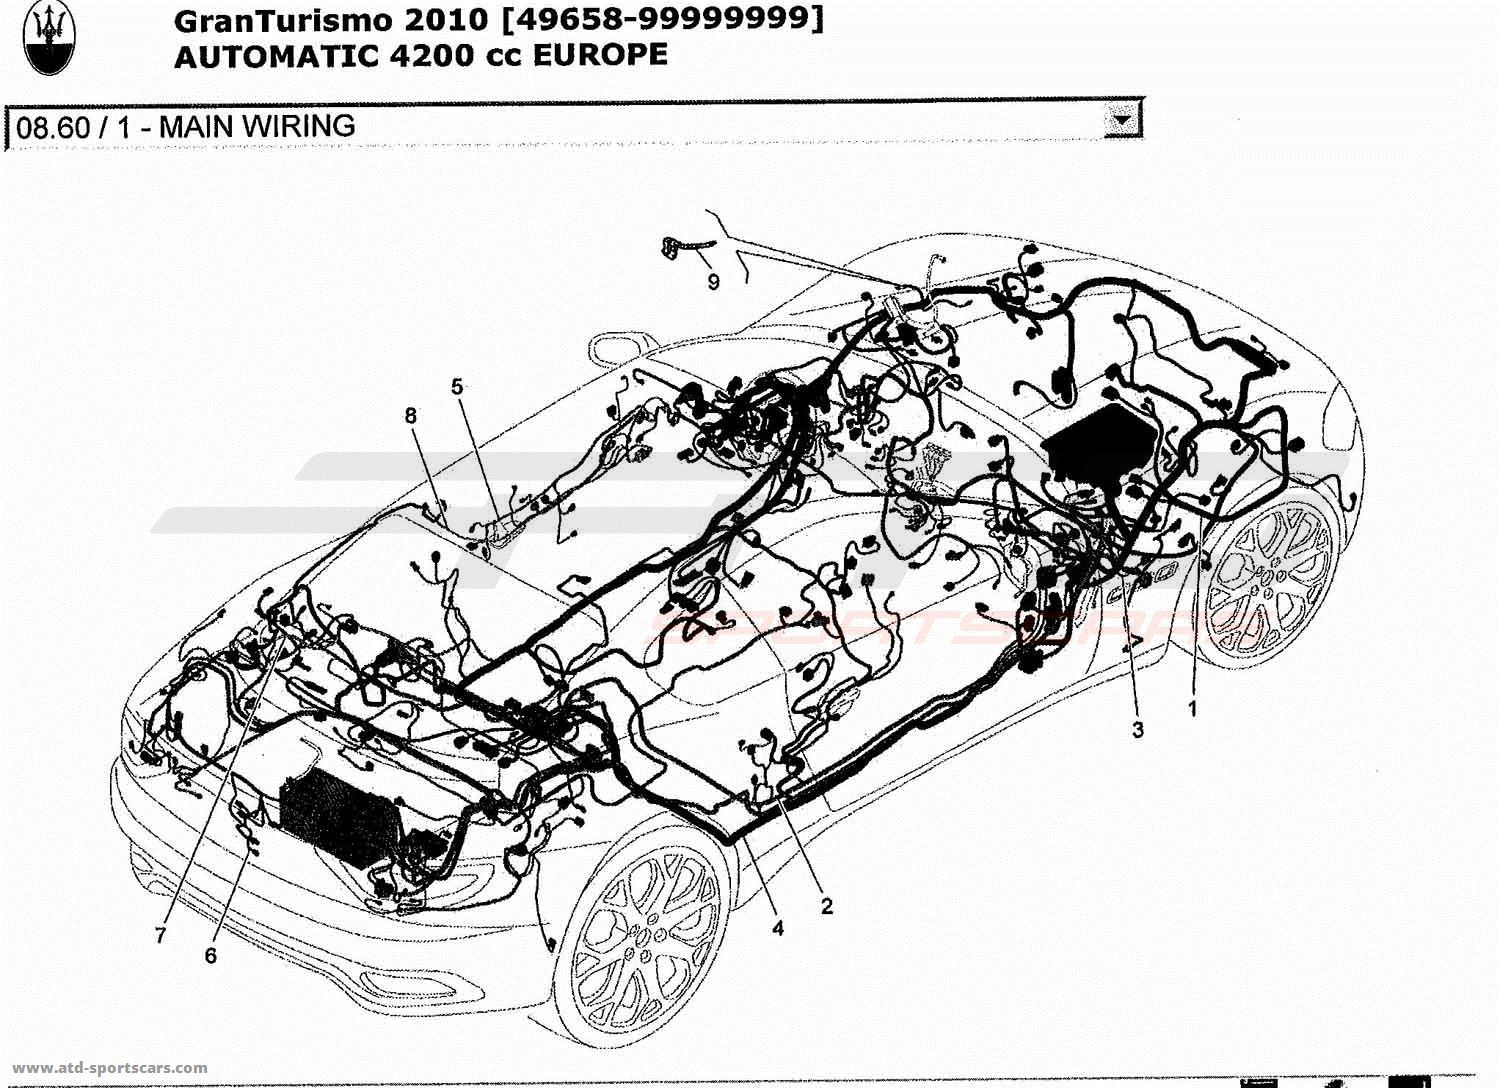 Maserati Ghibli Wiring Diagram Trusted Diagrams Spyder 2010 Granturismo Circuit And Corvette